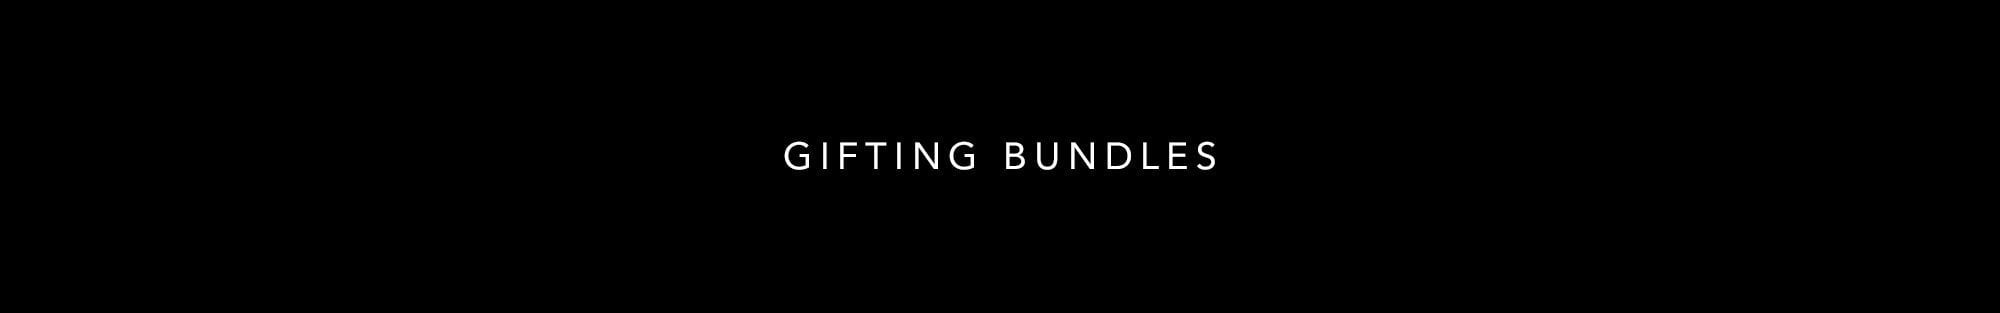 GIFTING BUNDLES